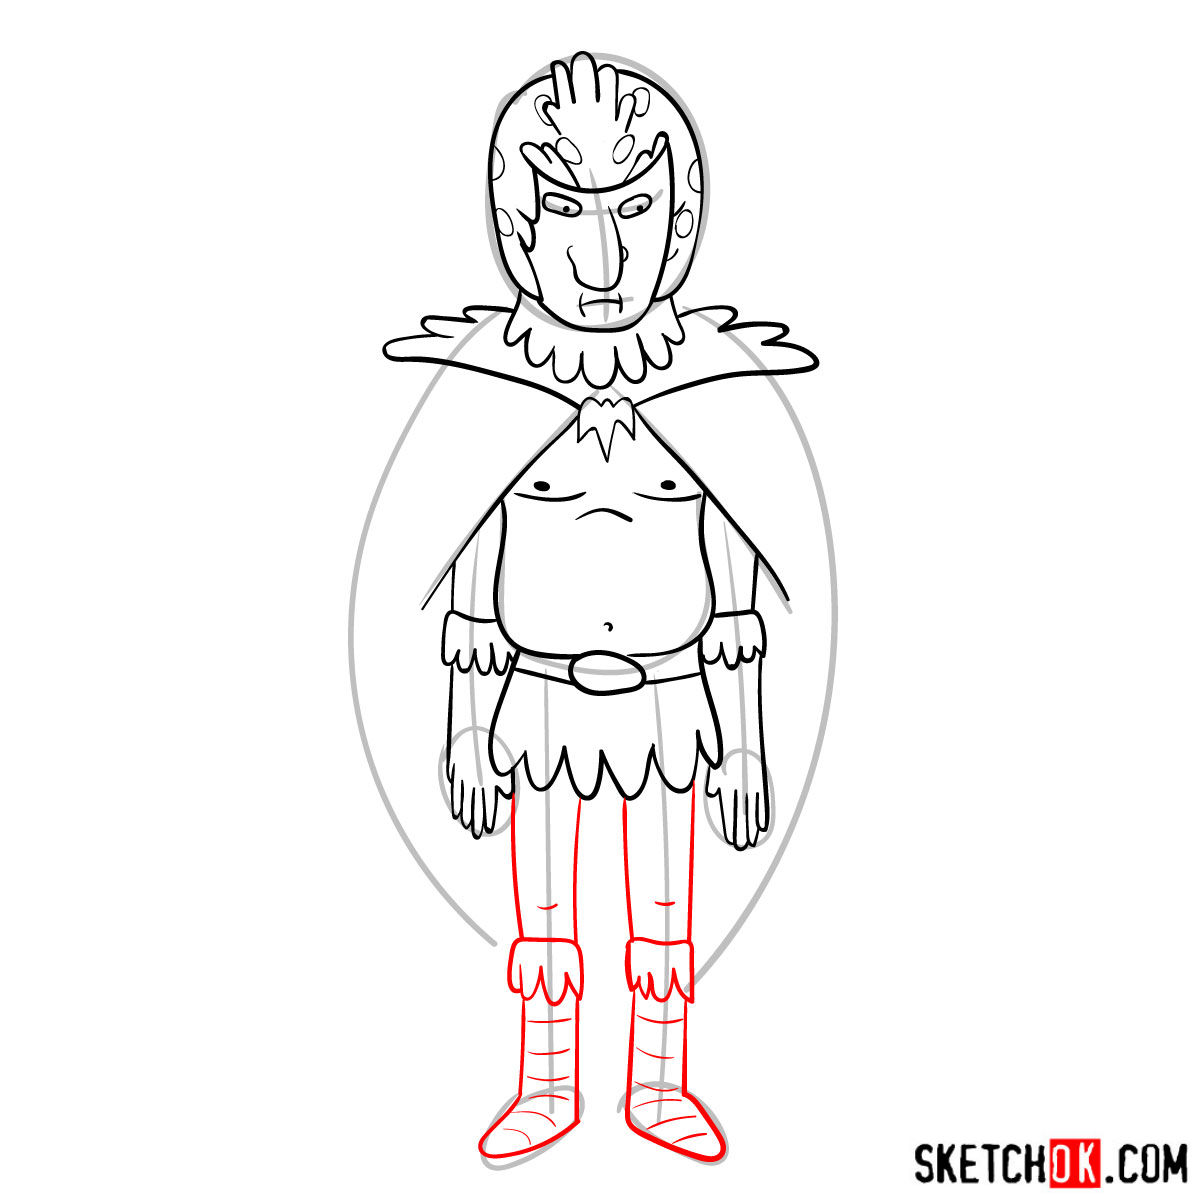 How to draw Birdperson from Rick and Morty series - step 10